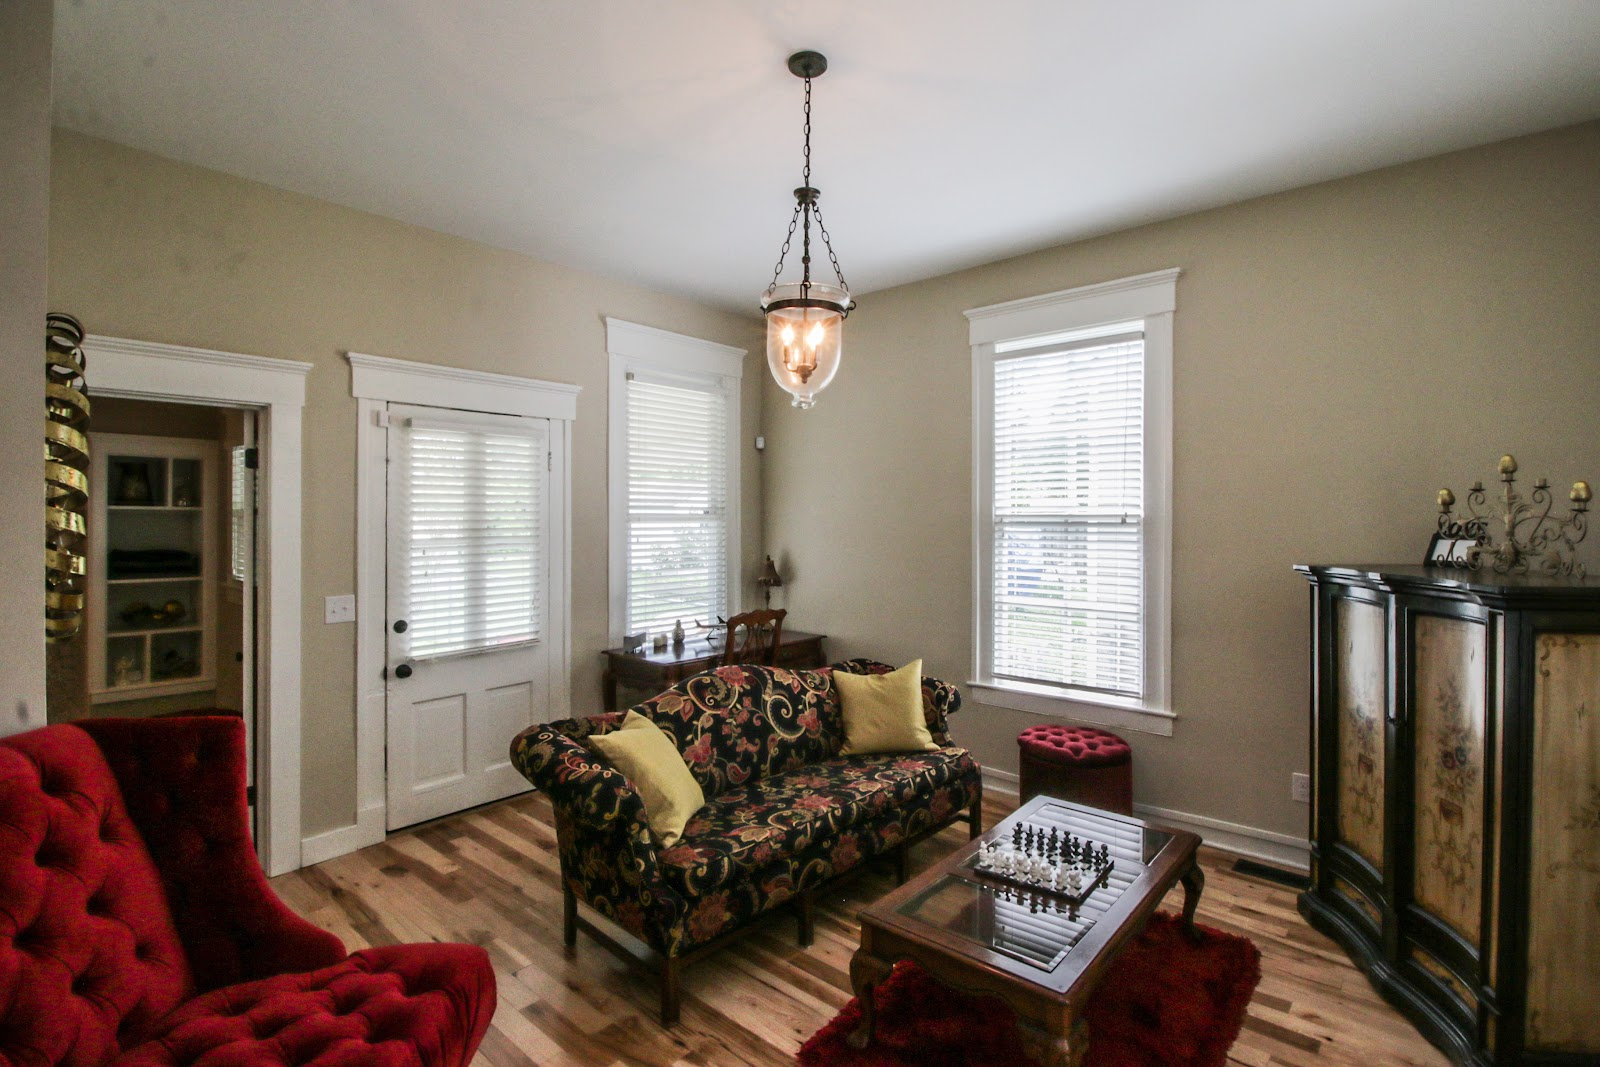 Sitting room for 1101 Forrest St Louisville KY 40217.